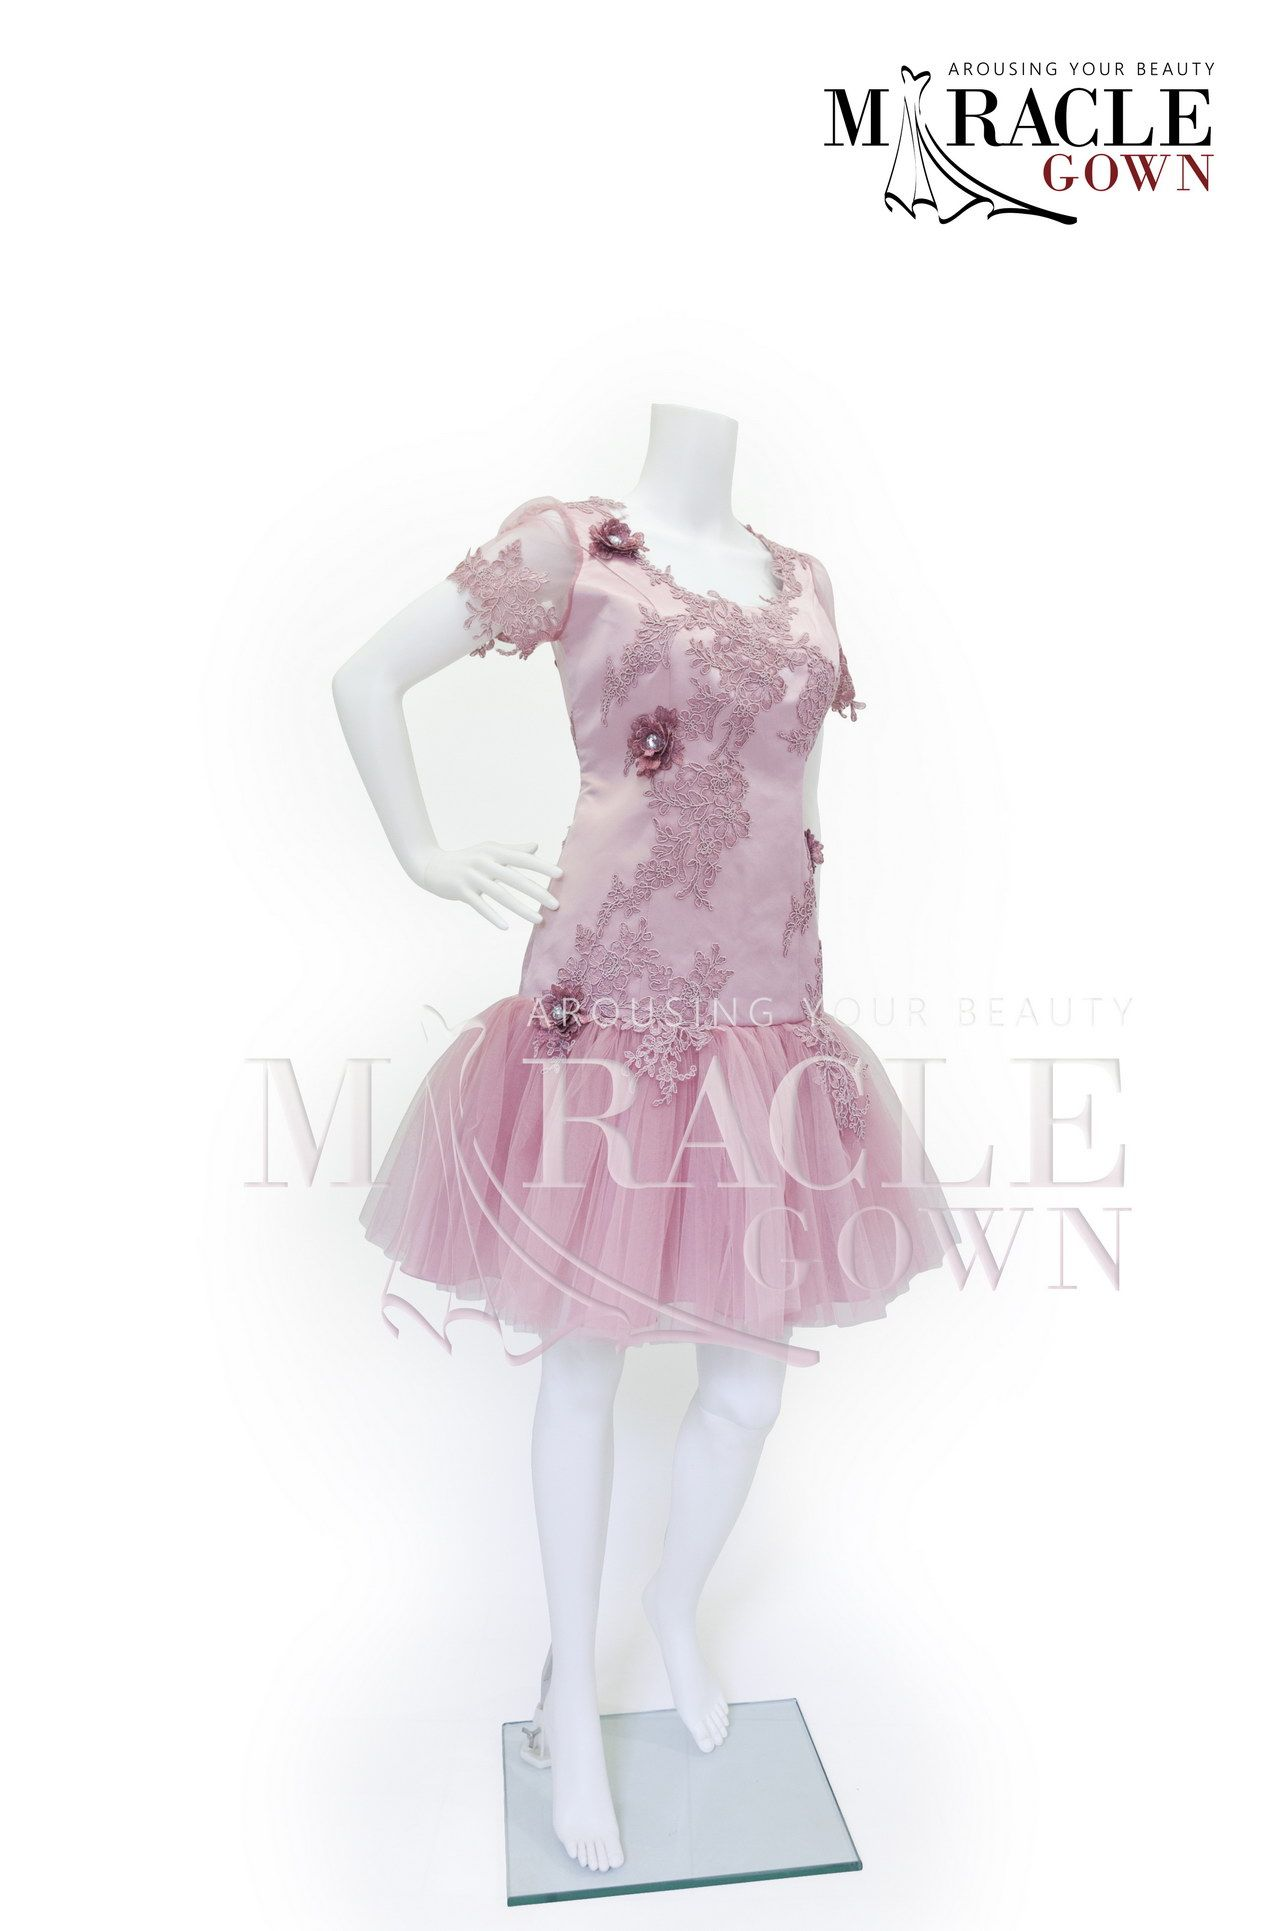 Misty rose brocade flourished facebookmiraclegown or